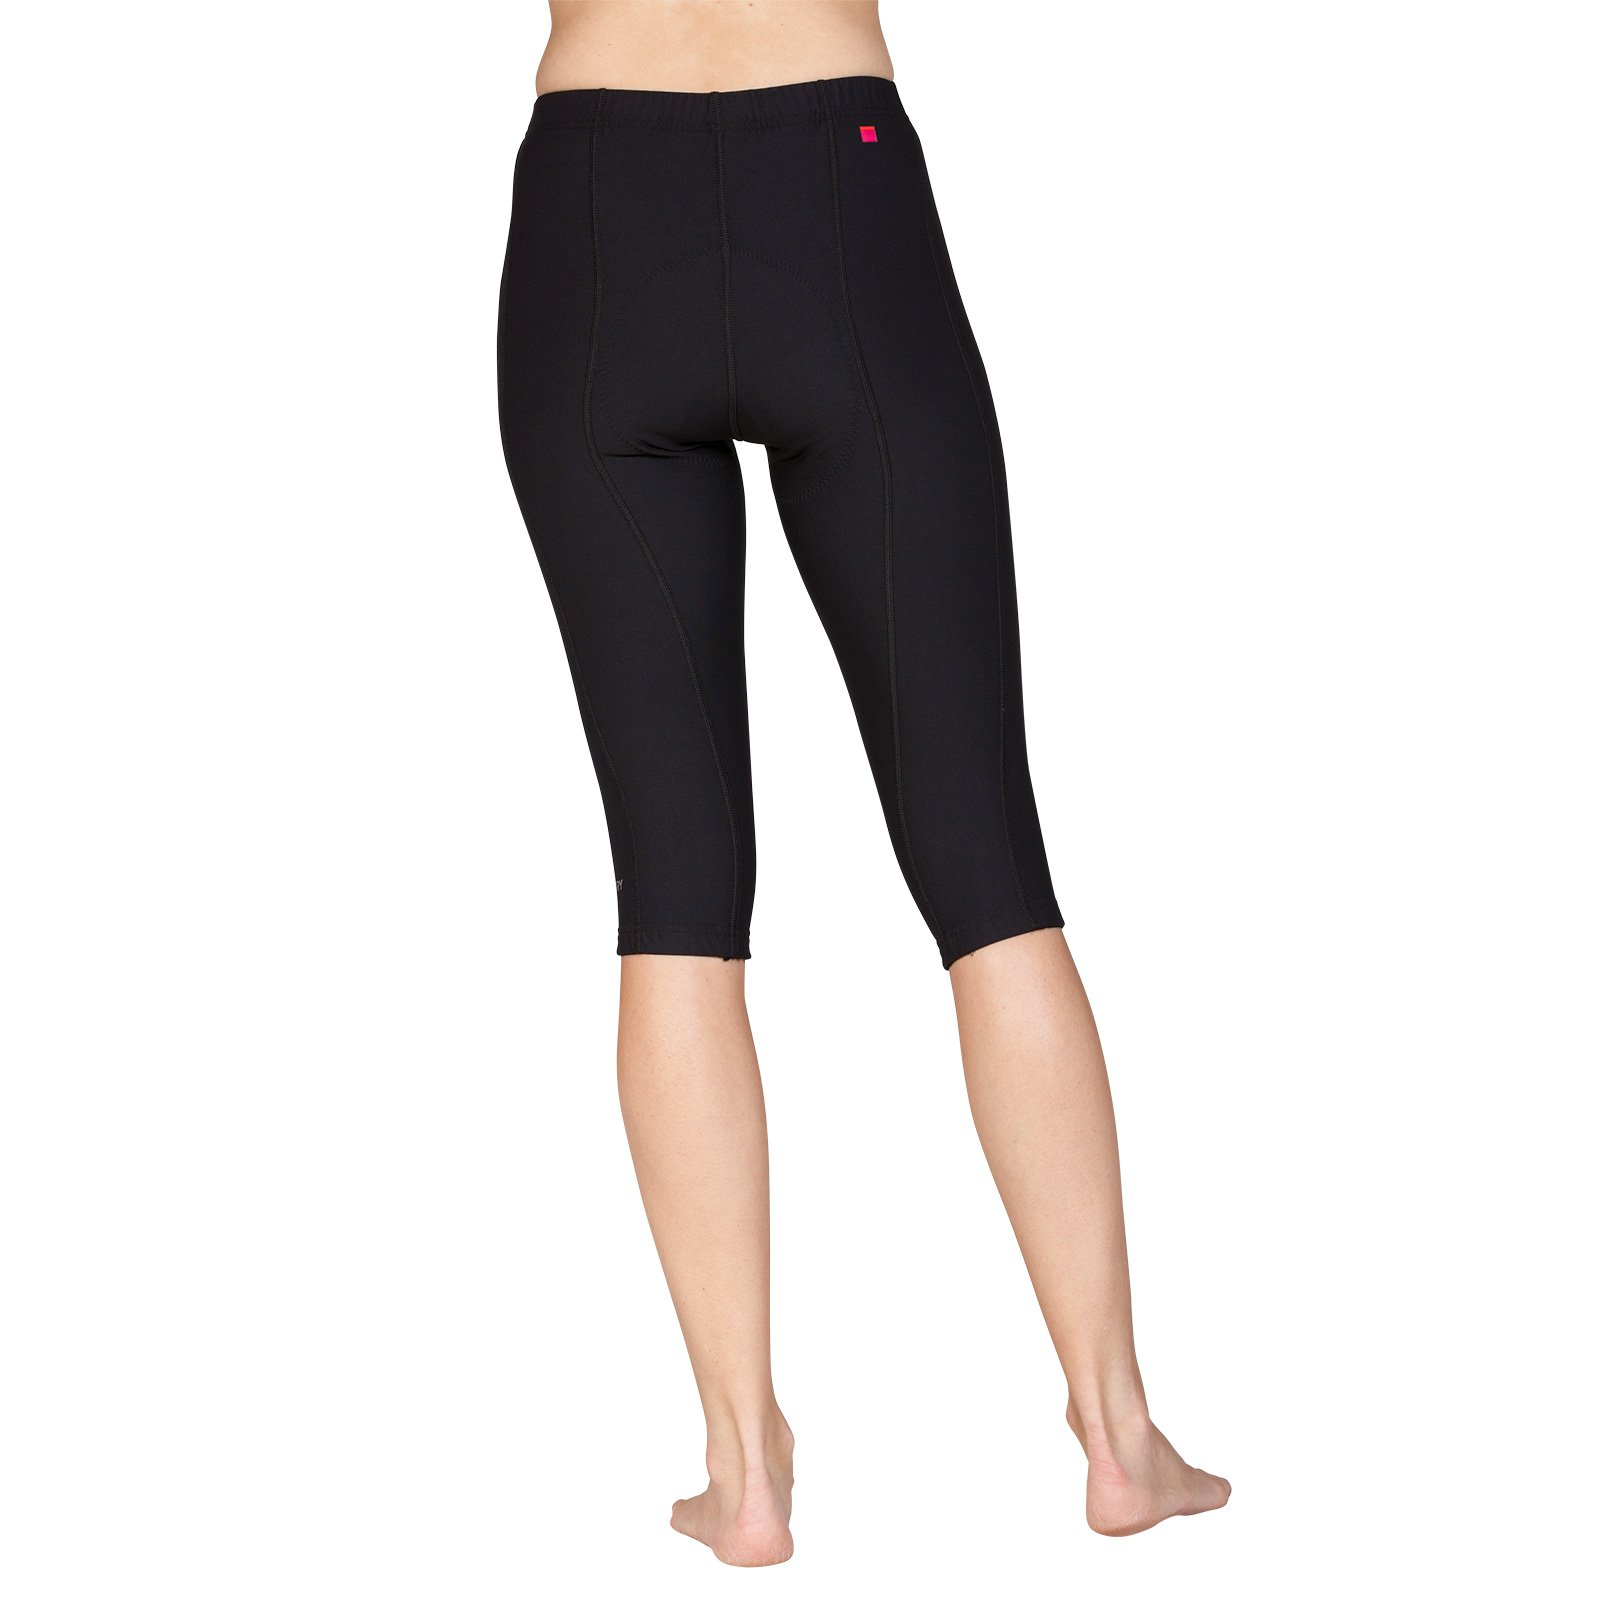 Terry Cycling Knickers For Women - One Of Our Most Popular Black Bike Bottoms For All-Season Riding - Black - Small by Terry (Image #3)